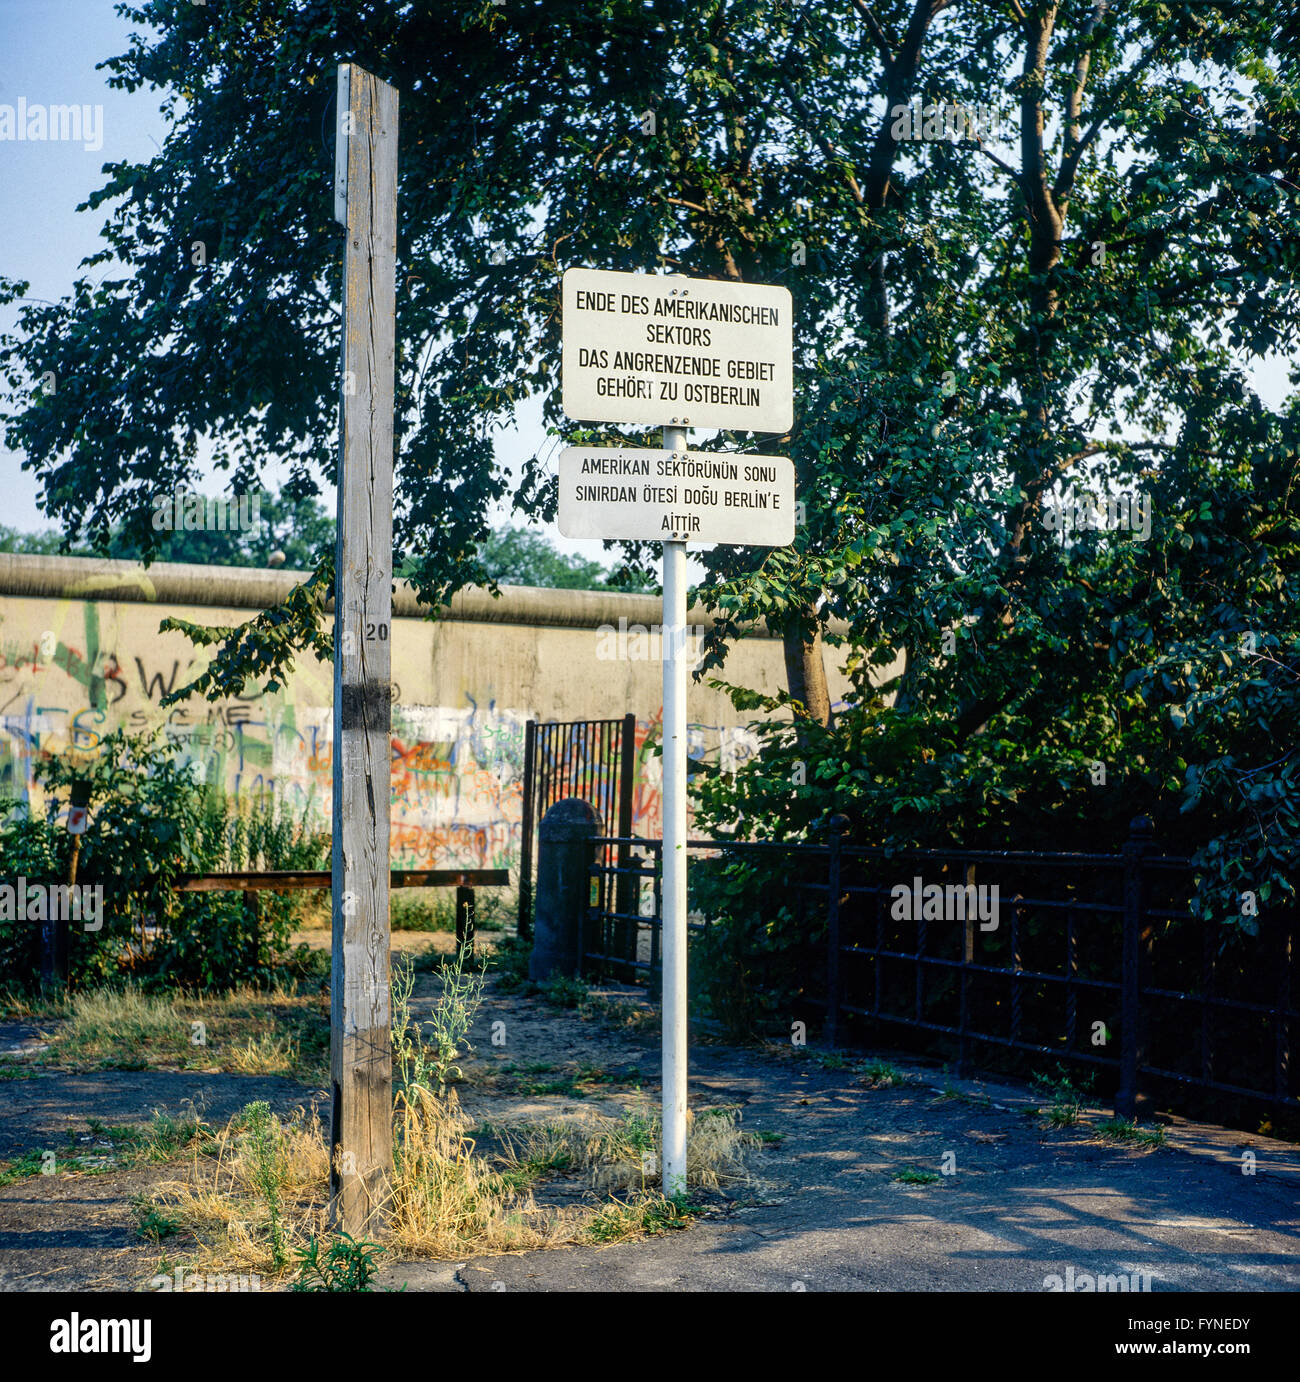 August 1986, warning sign for end of American sector in front of Berlin Wall, West Berlin side, Germany, Europe, - Stock Image